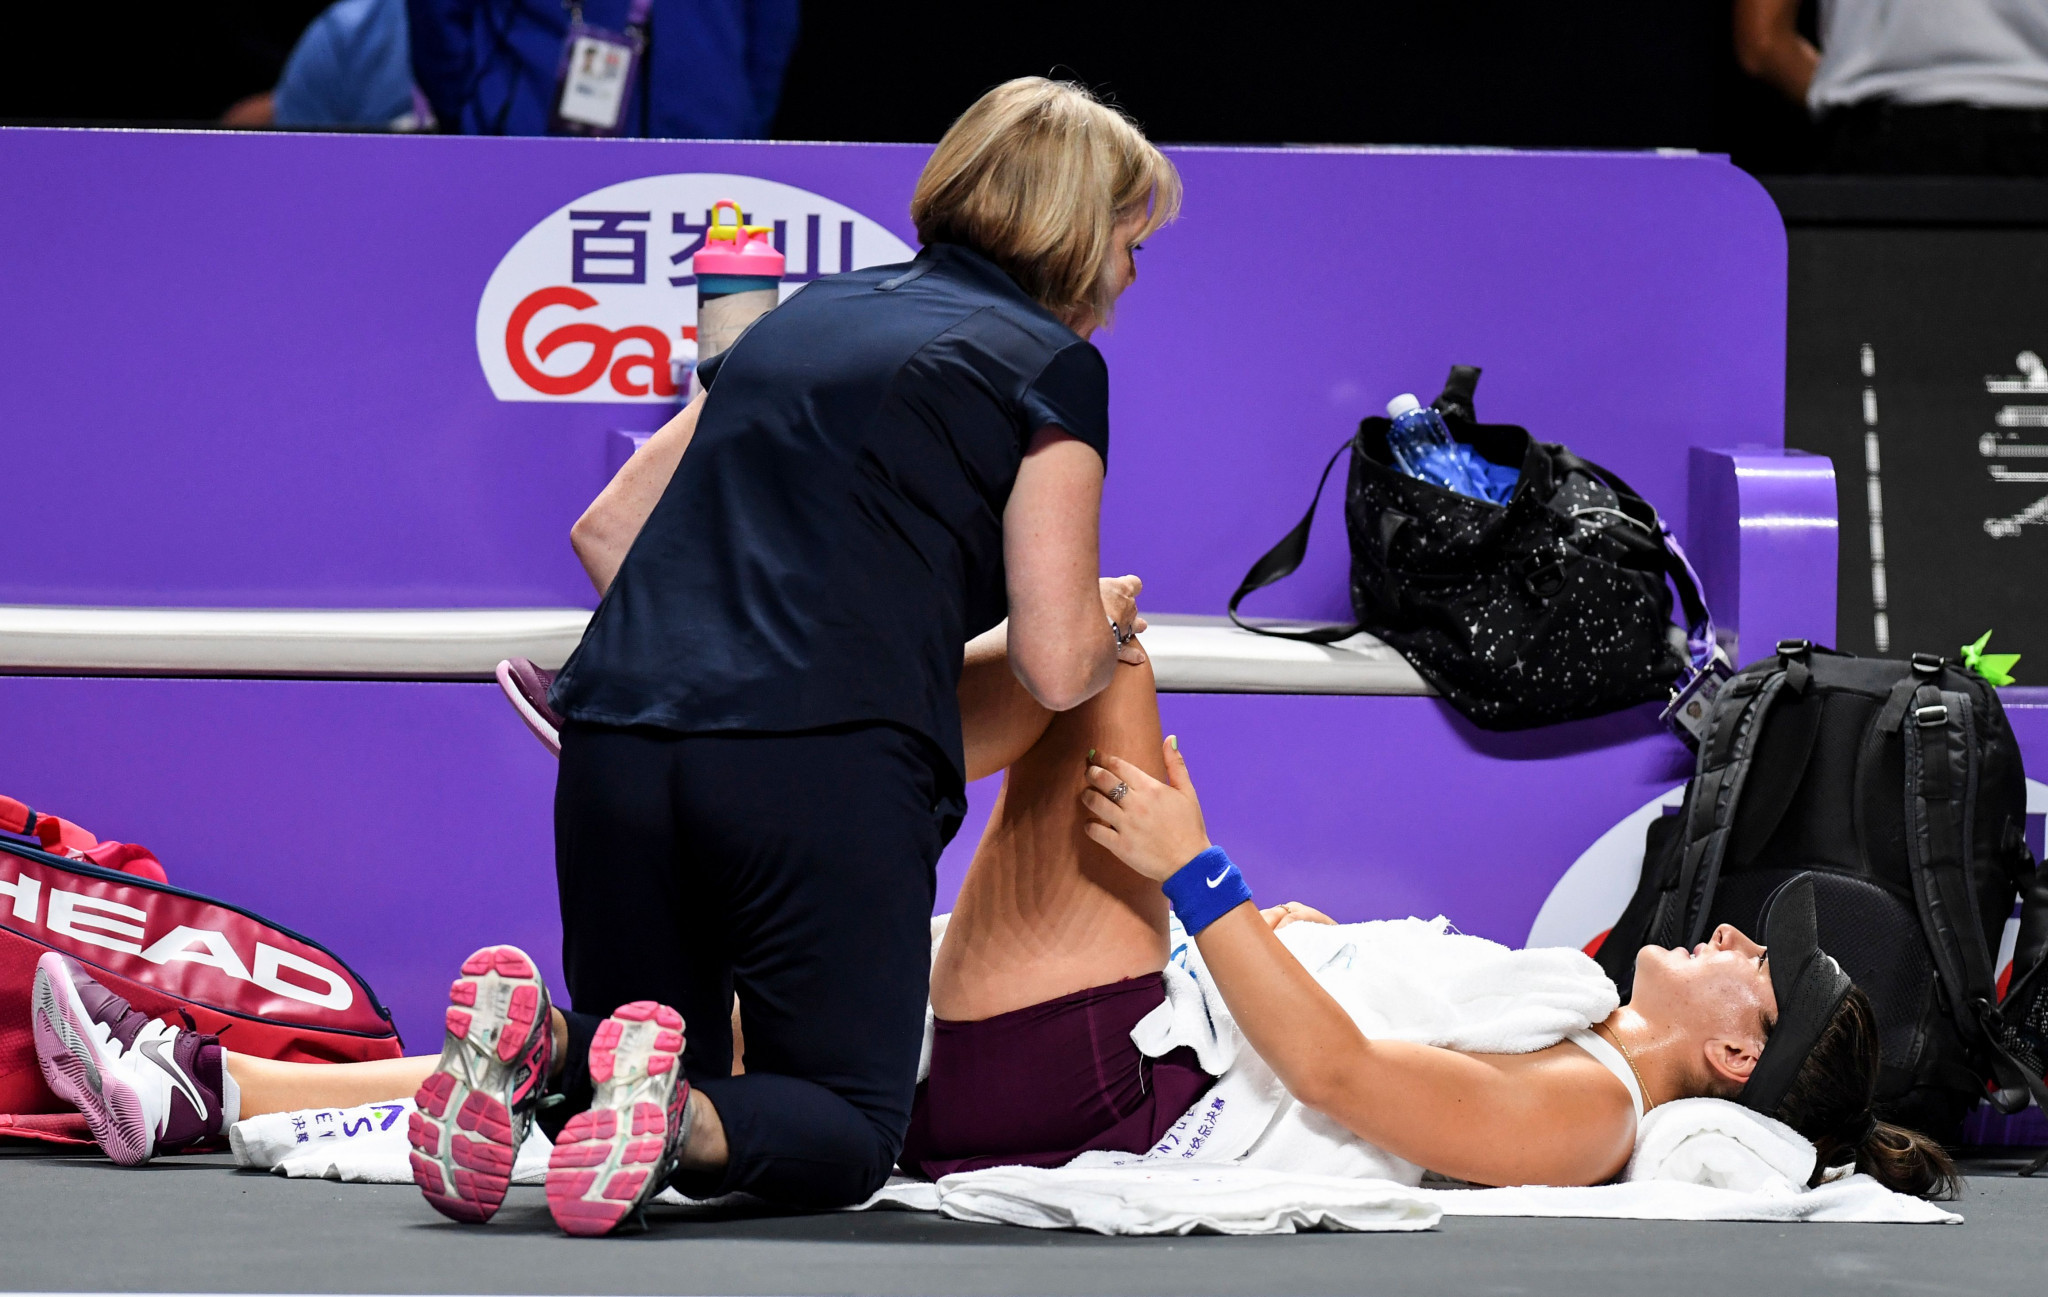 Easy win for Pliskova as Andreescu succumbs to injury at WTA Finals